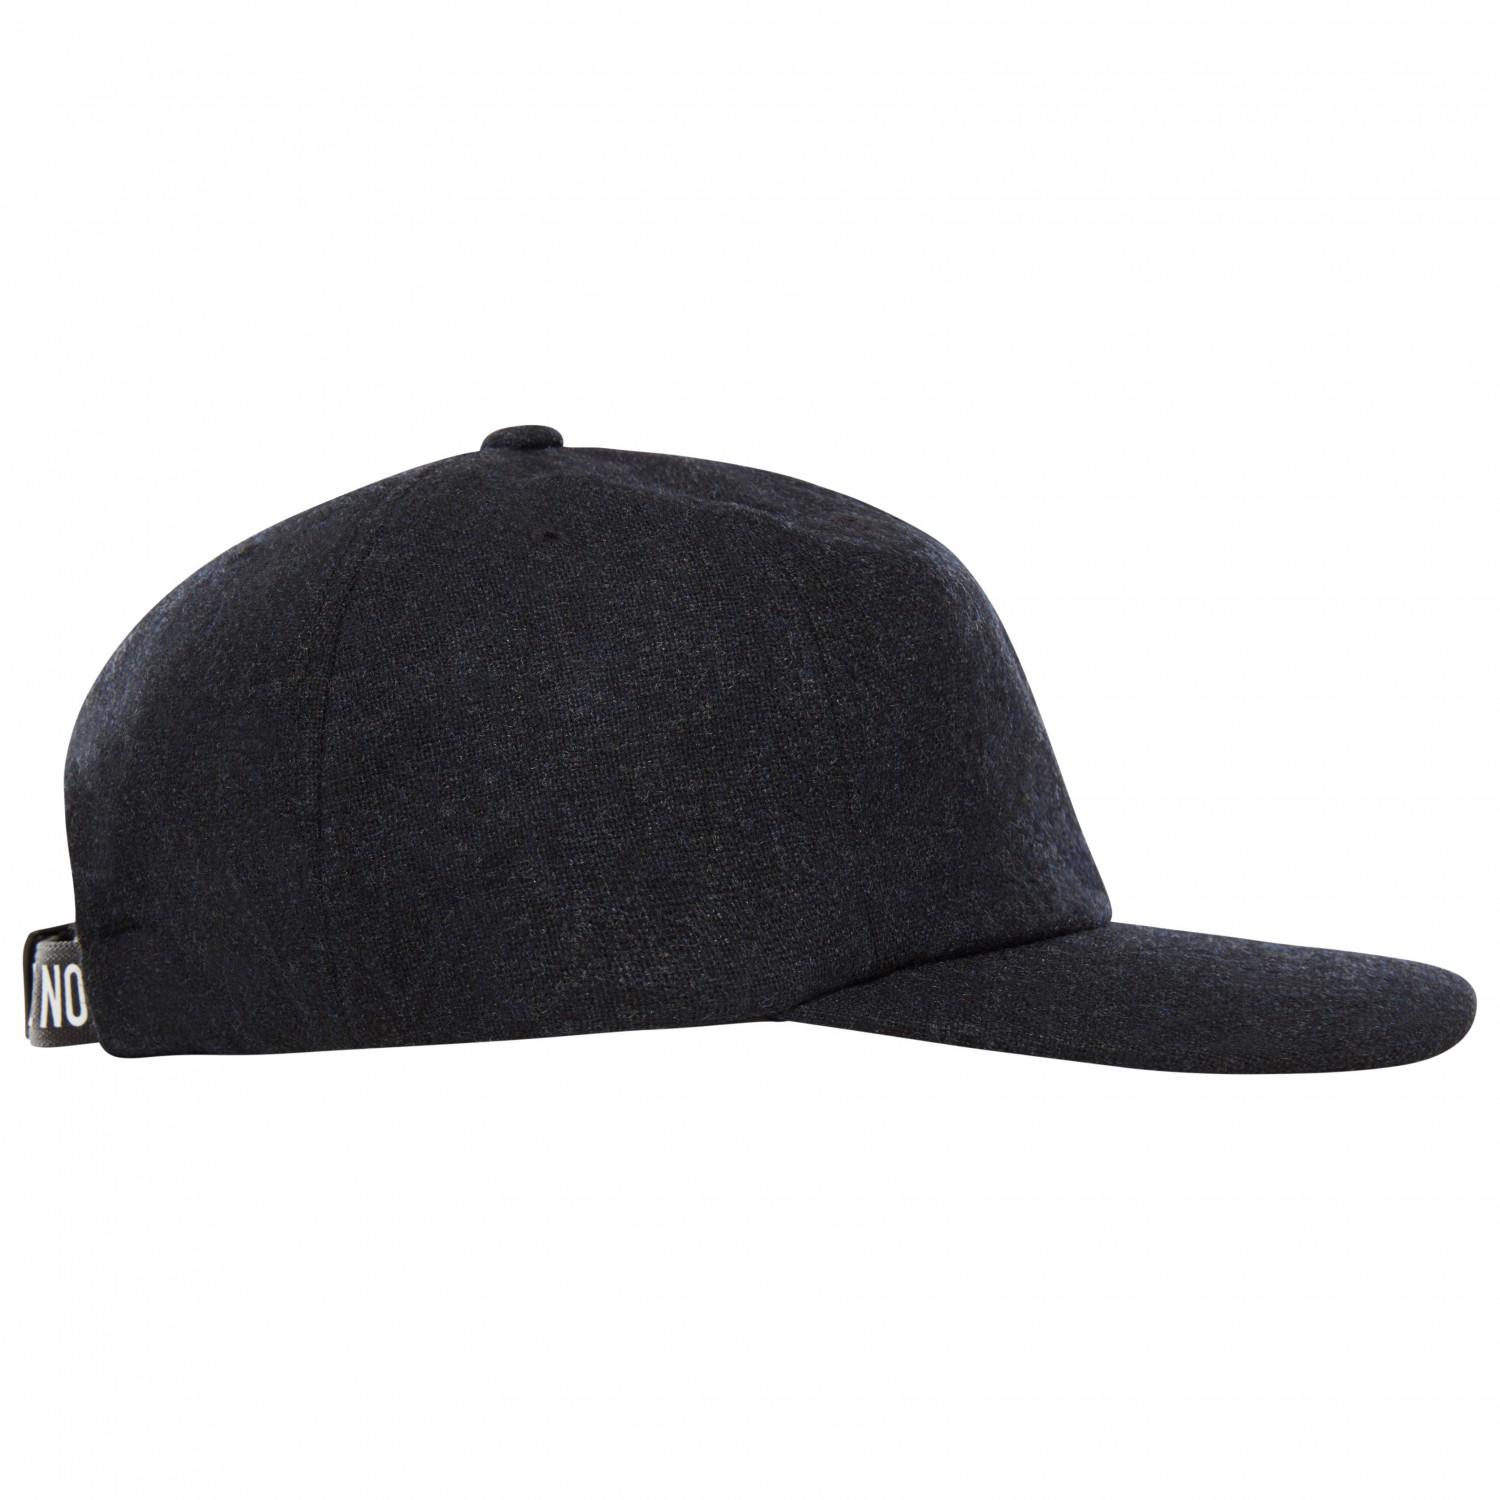 The North Face - Wool Ball Cap - Cap 695b01c6cd5